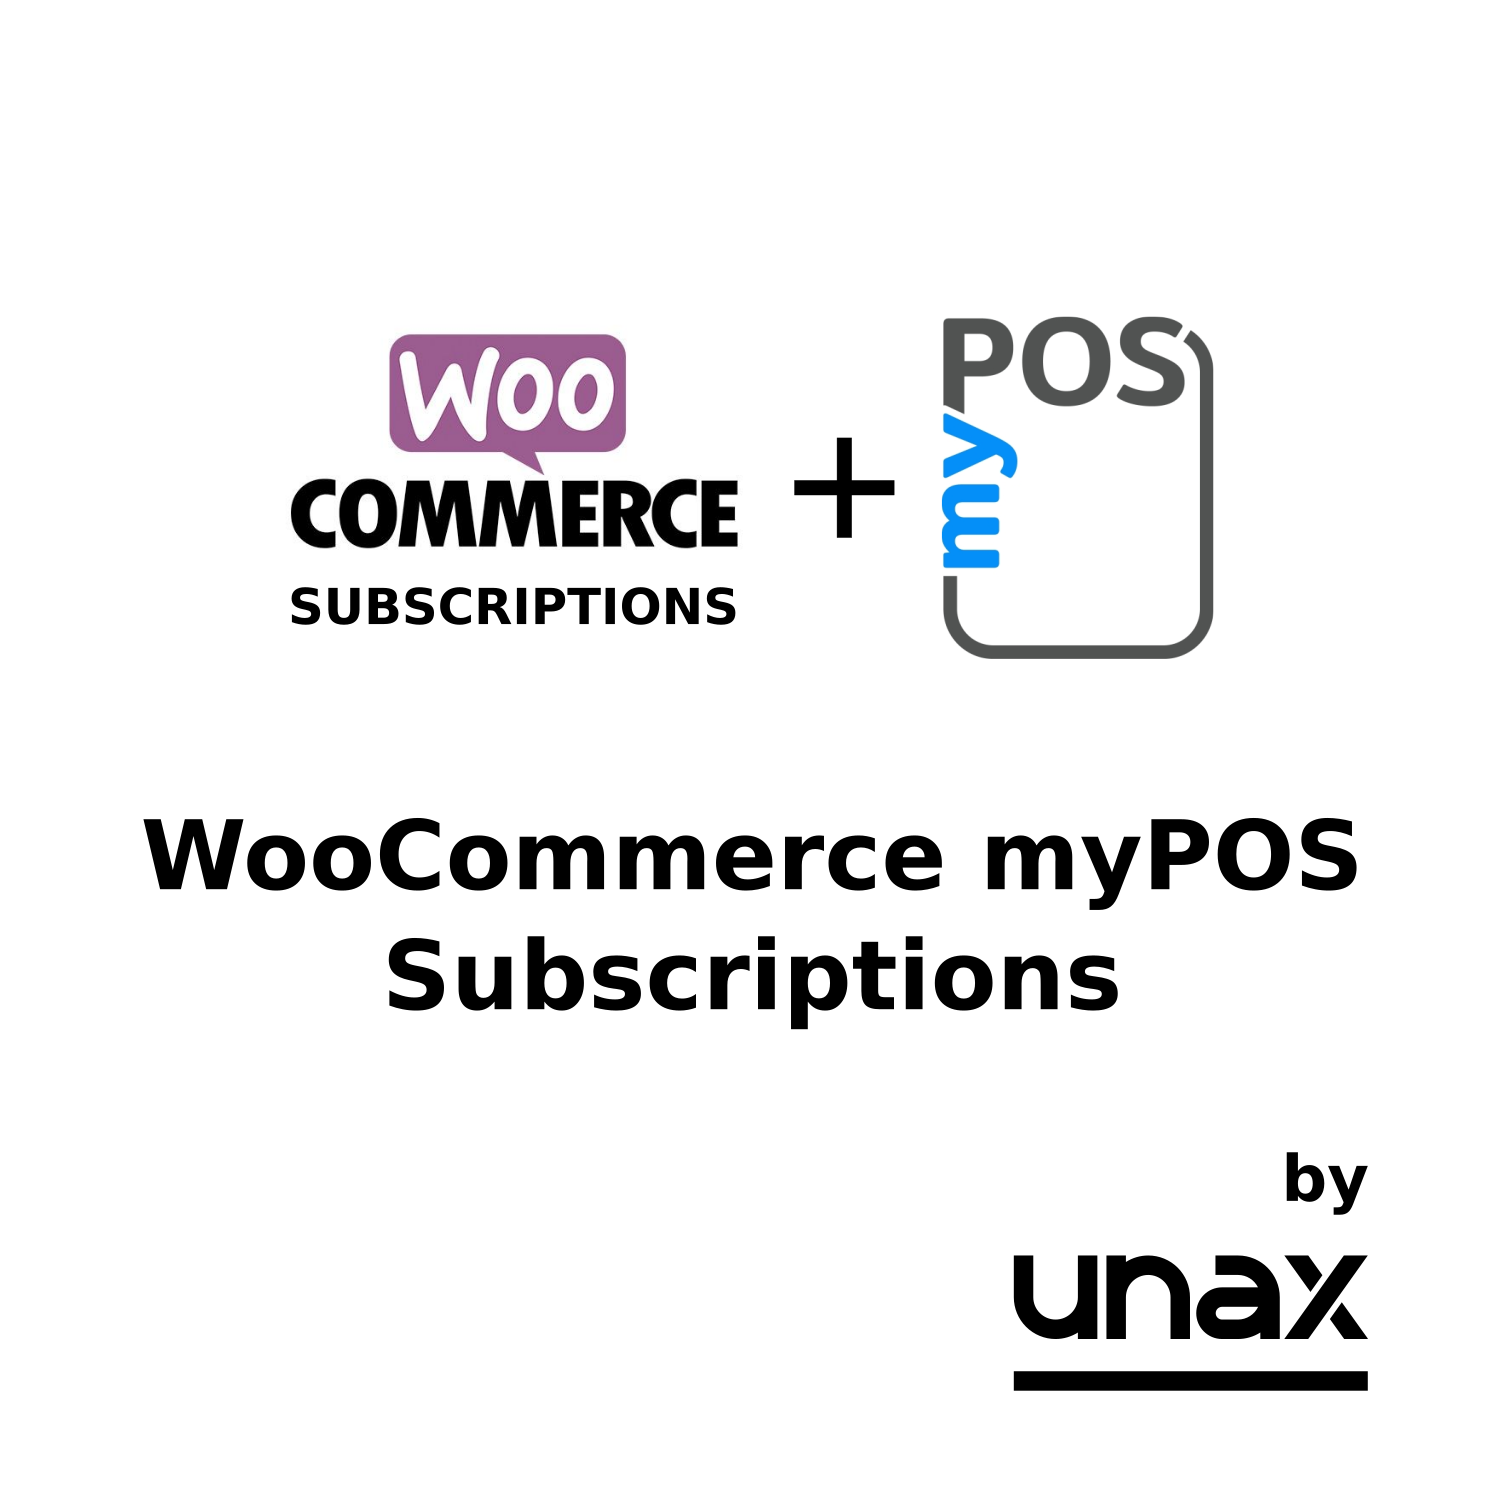 Woocommerce MyPOS Subscriptions by UNAX